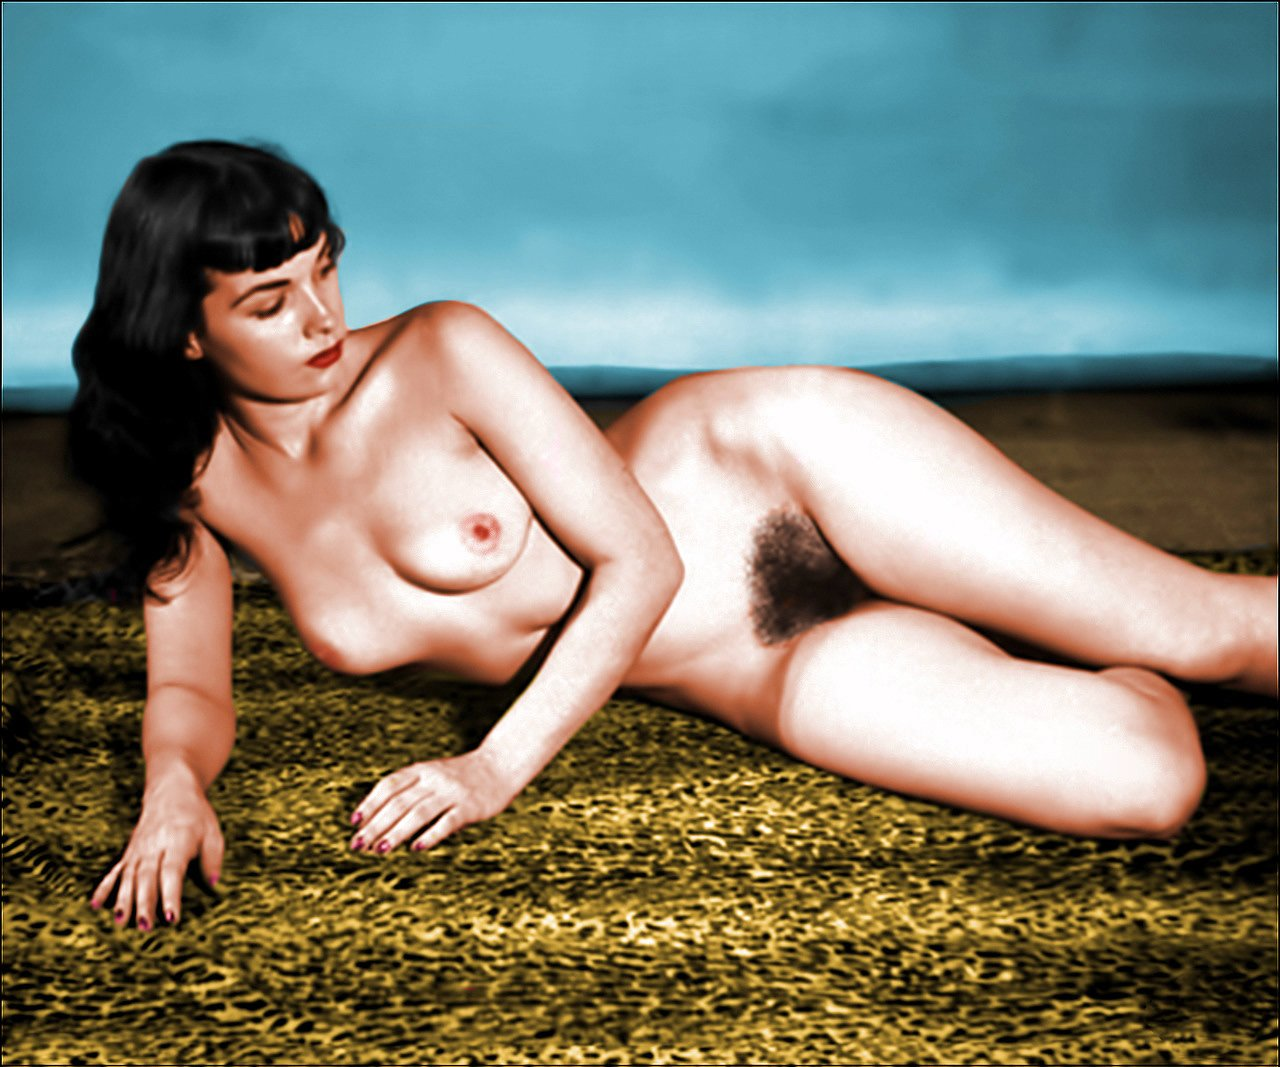 Betty page nude photo, sexy mommas pussy